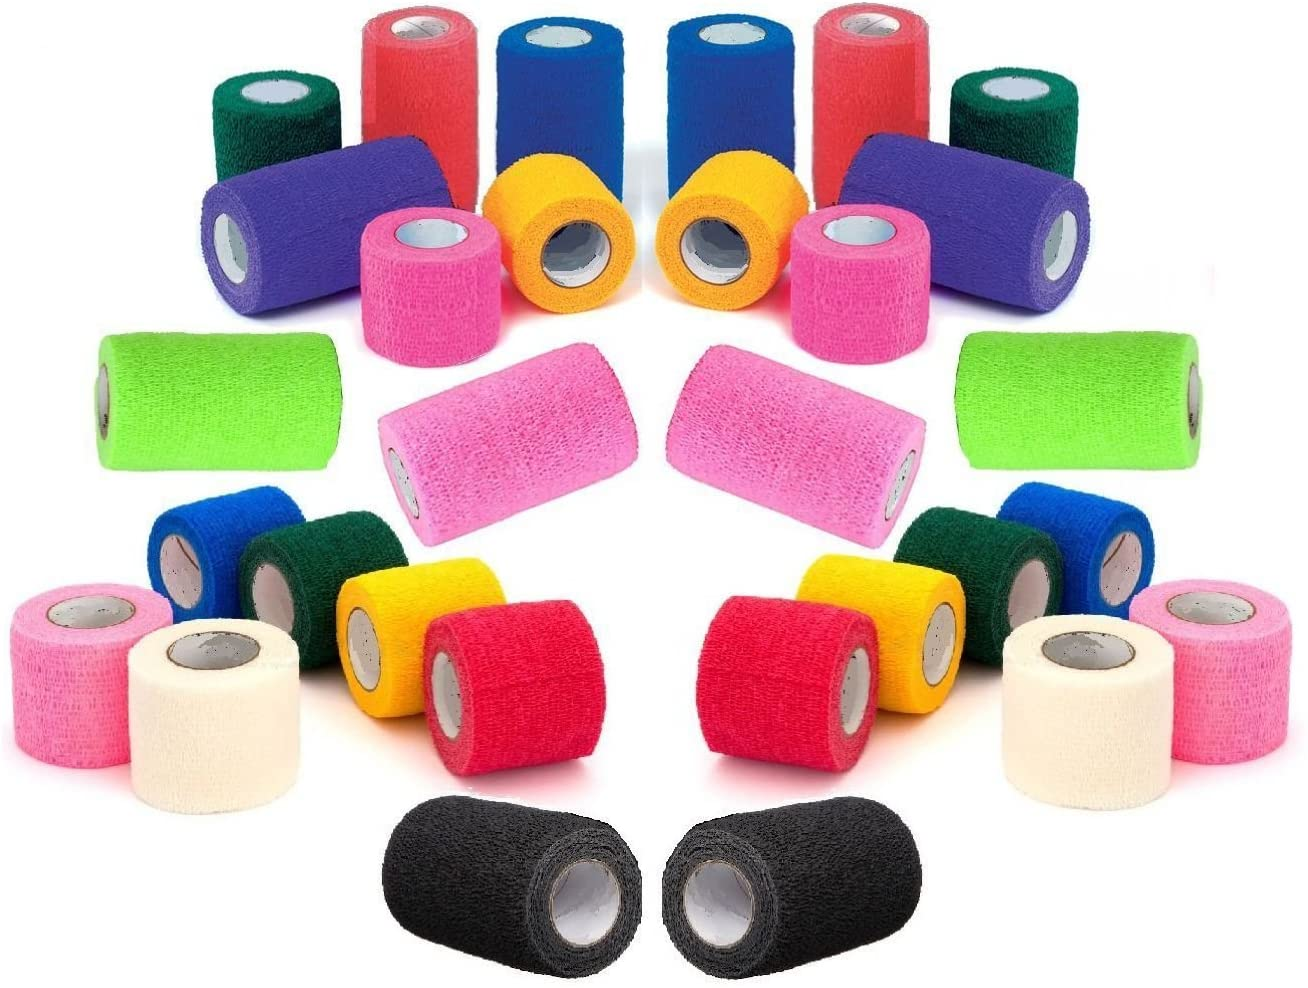 Vet Wrap Tape Bulk Assorted and Max 46% OFF Colors Quantity limited 18 6 12 Camouflage